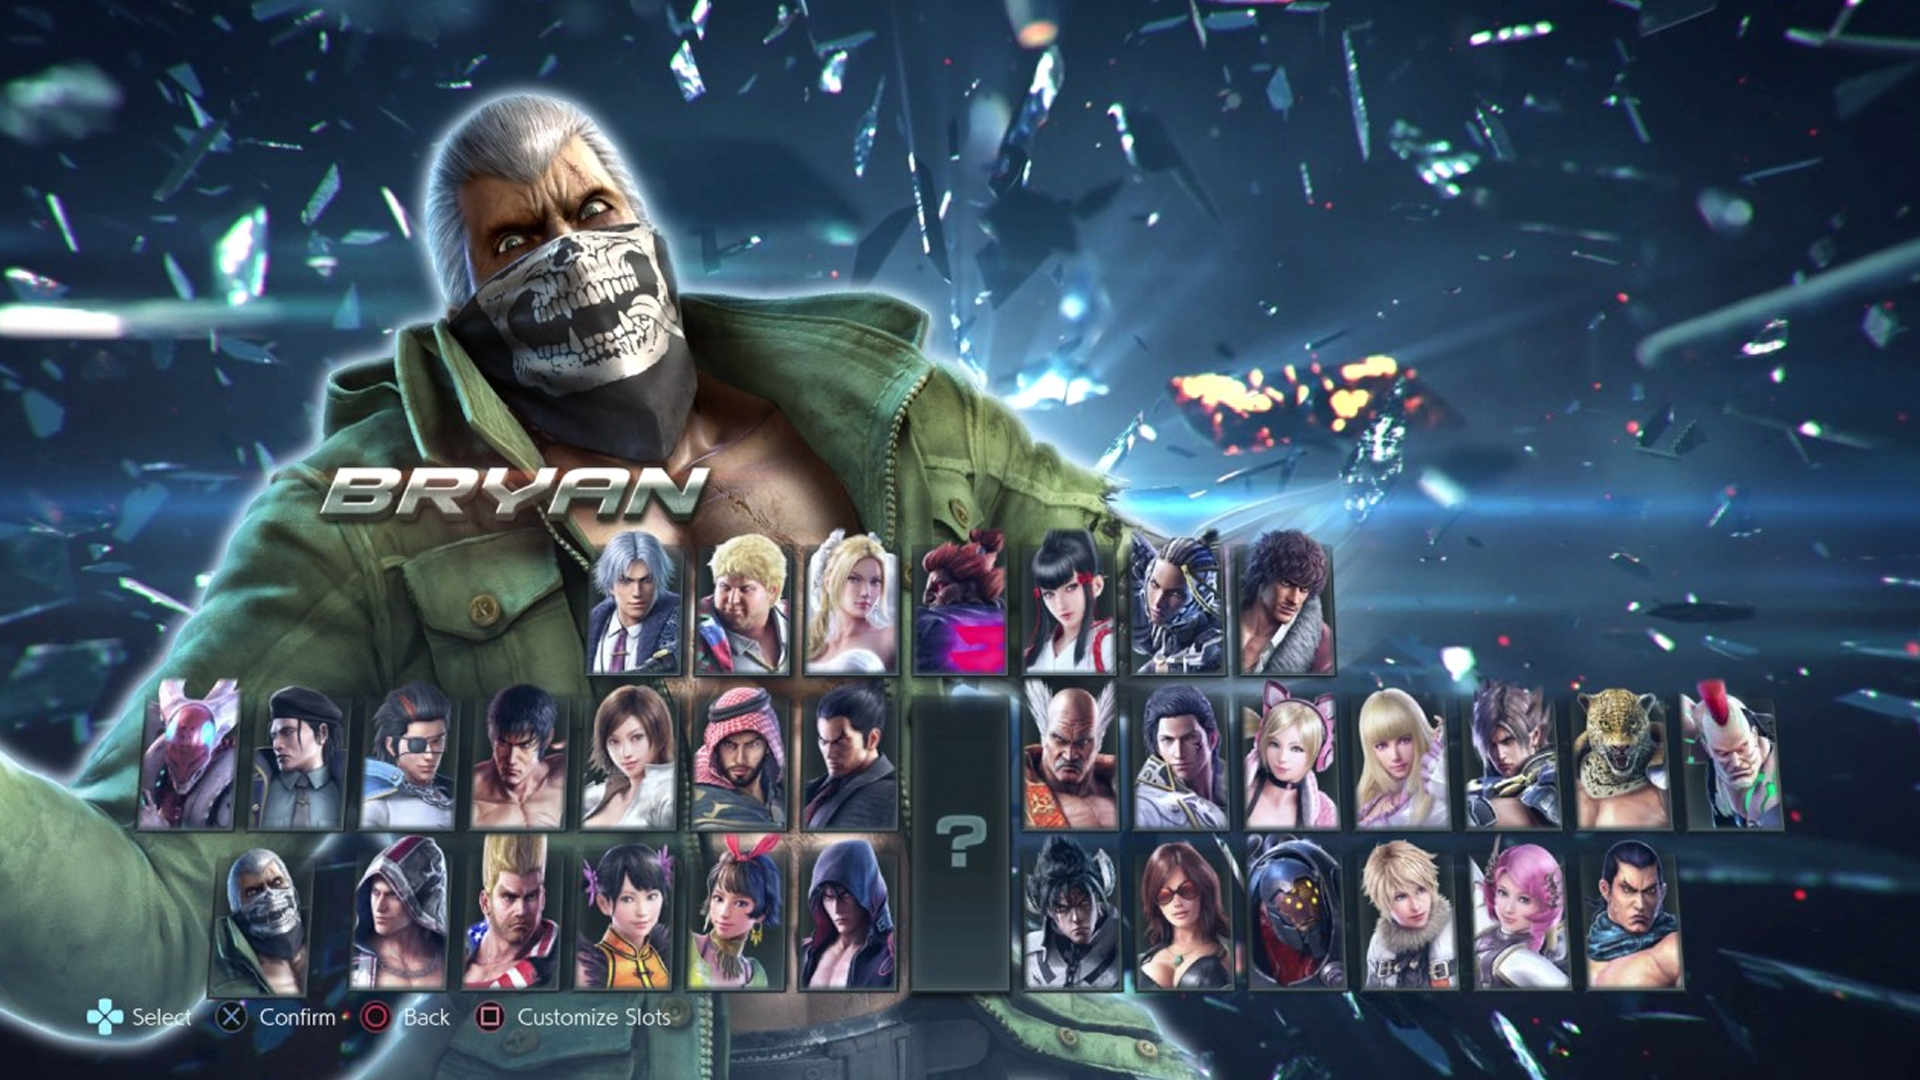 Top 10 Best and Worst Things About Tekken 7